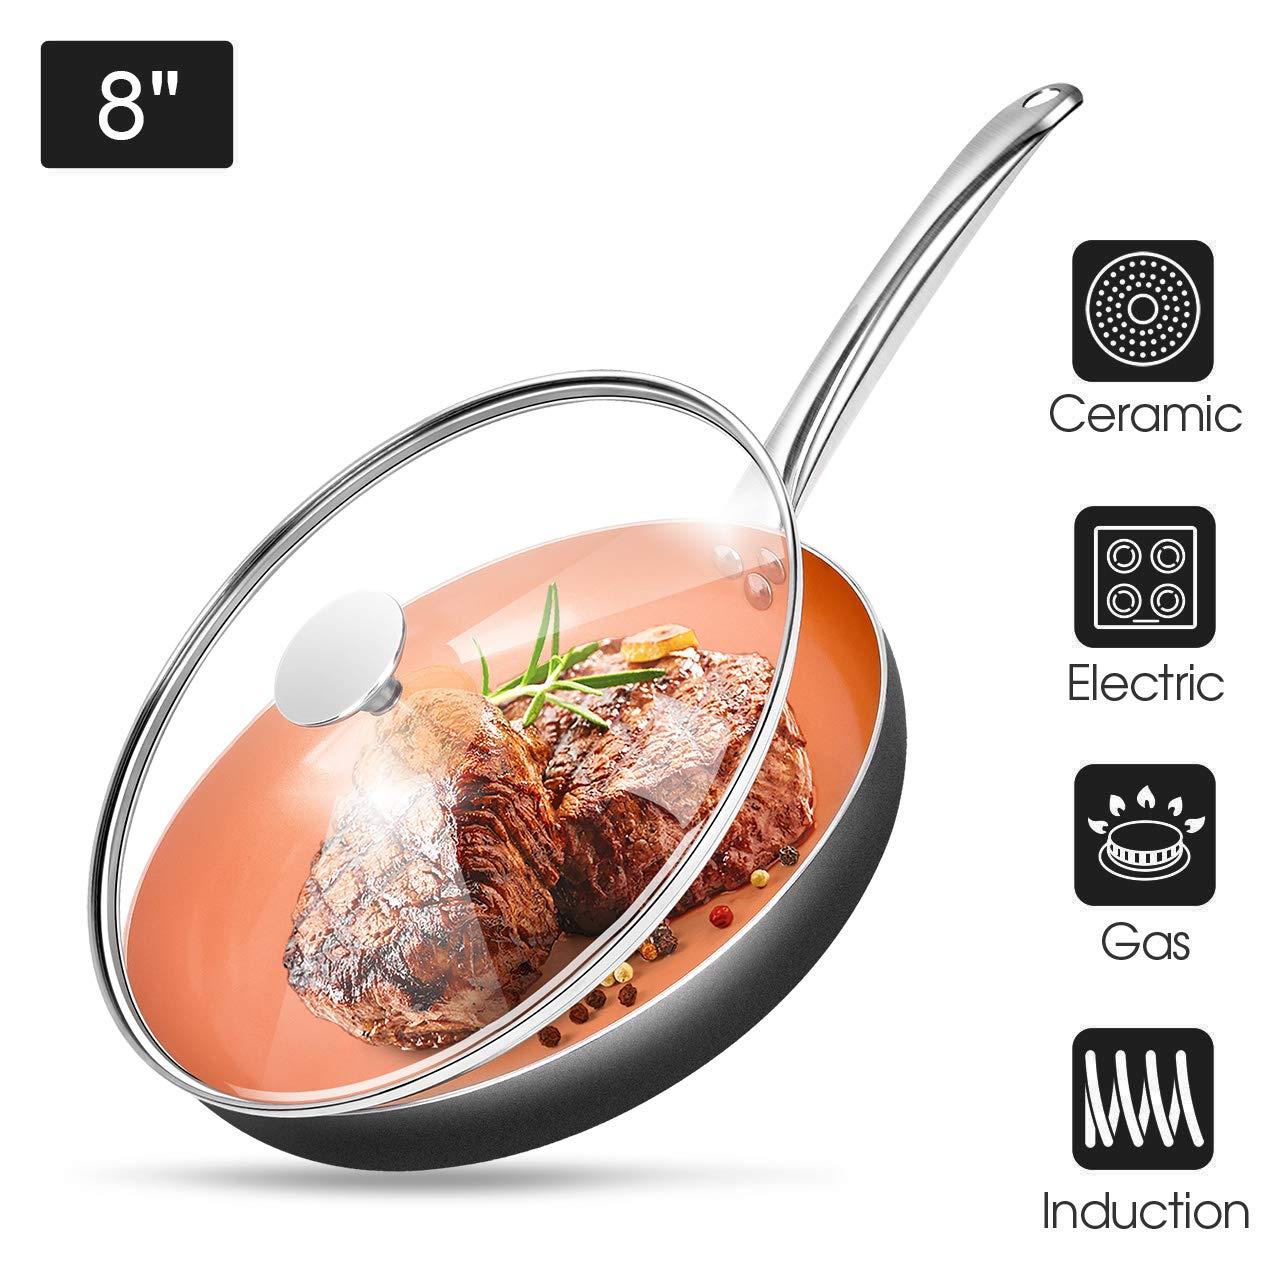 """8"""" Copper Nonstick Frying Pans with Lid - Chef's Classic Skillet with 100% PFOA-Free, Saucepan Ceramic Titanium Coating with Frying Pan, Professional Round Aluminum Saute Pan for Gas, Electric Cooktop"""